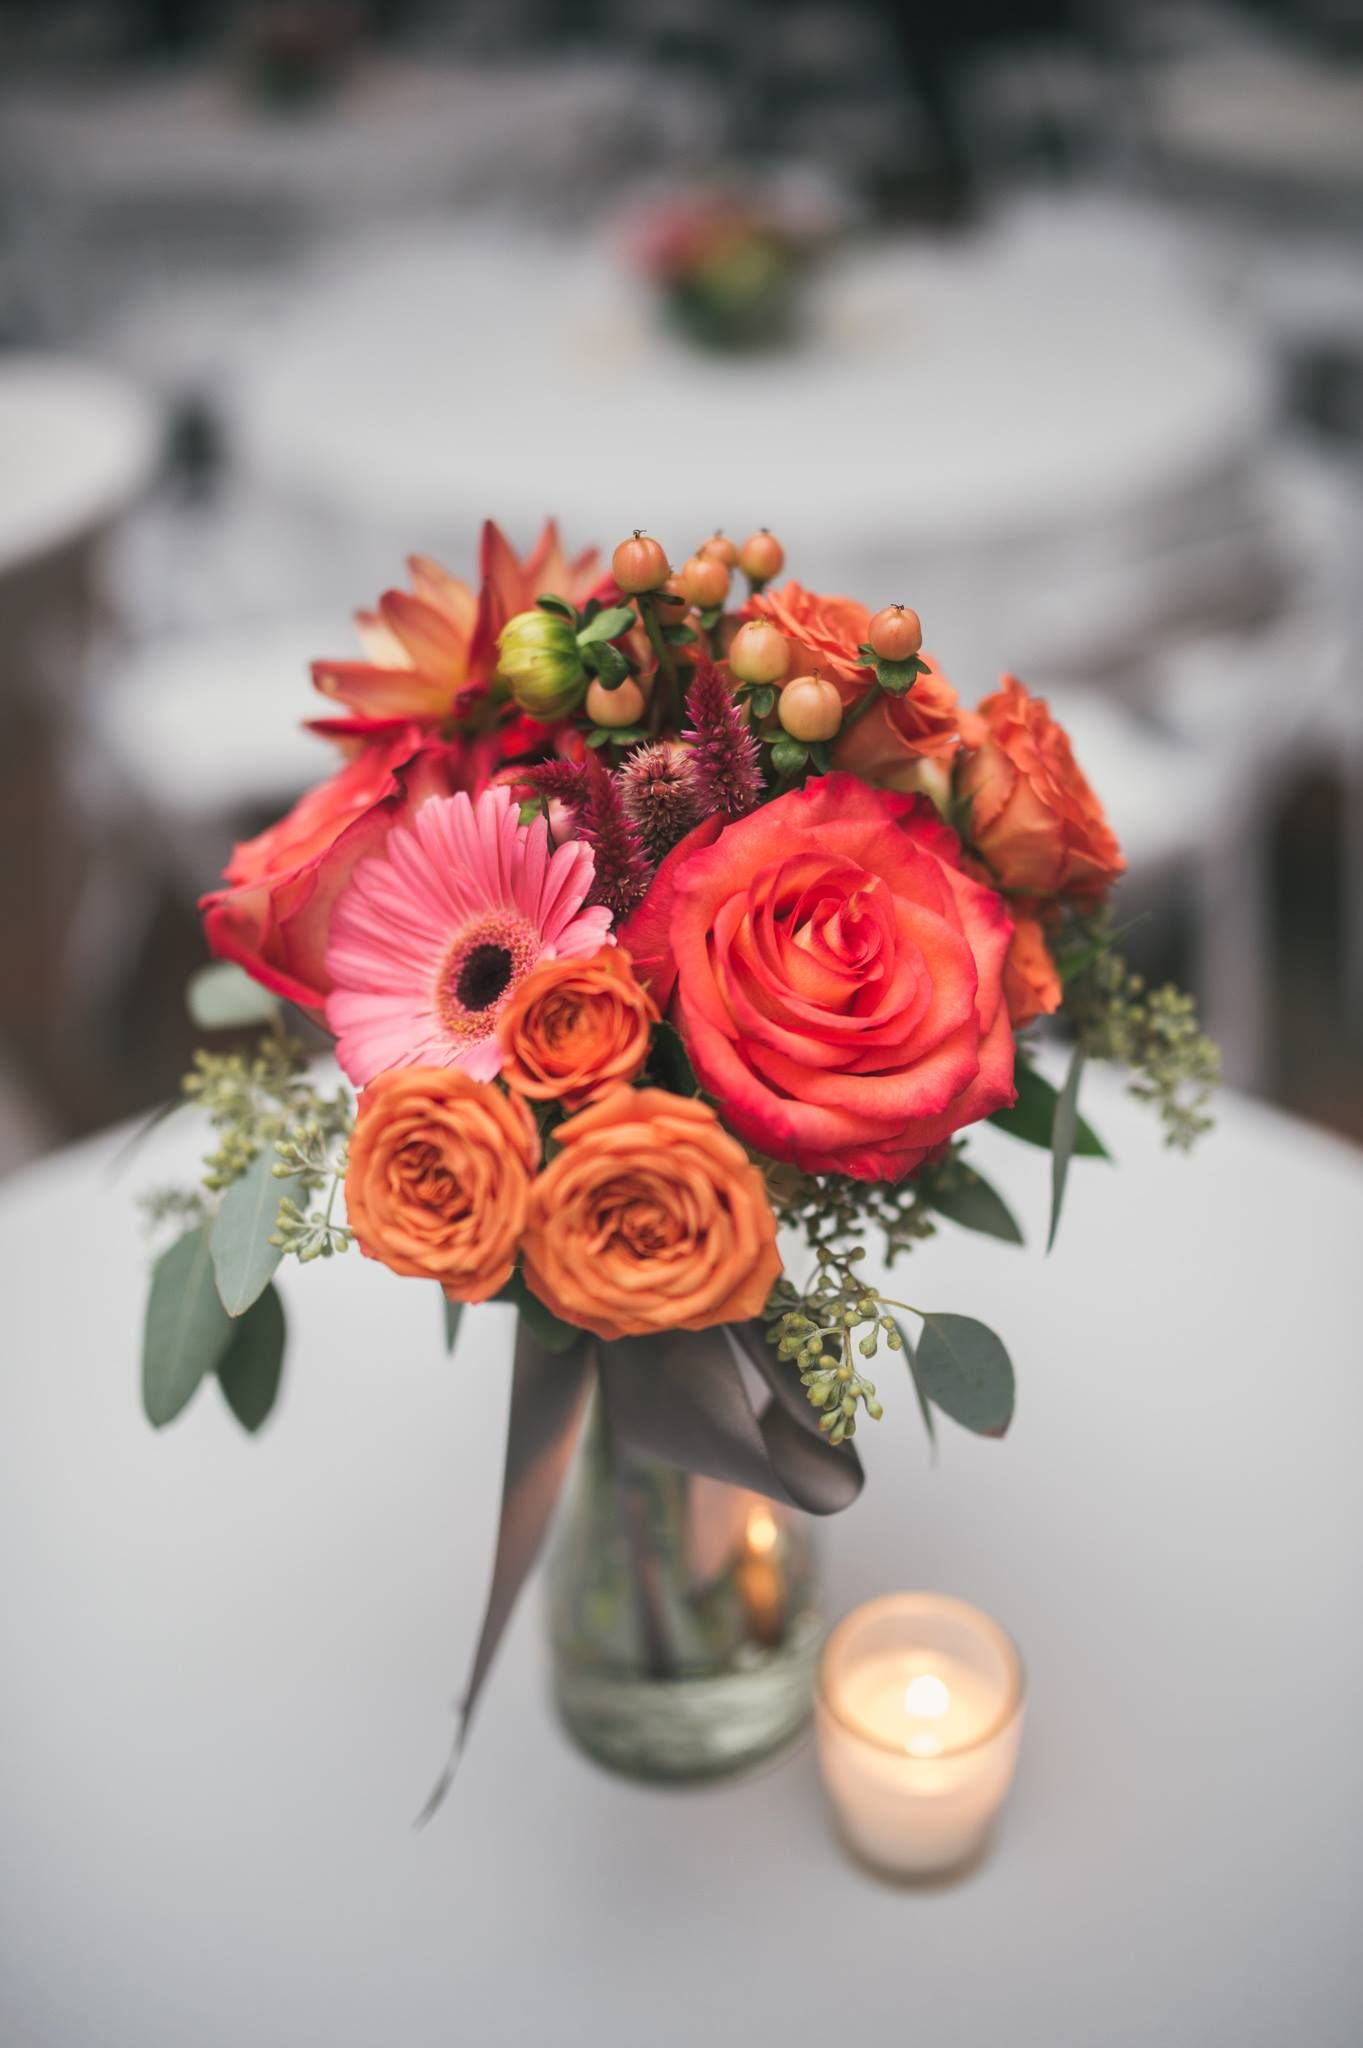 Fall Floral Arrangements Rebel Hill Florist Wedding Day Center Piece Photo Gallery